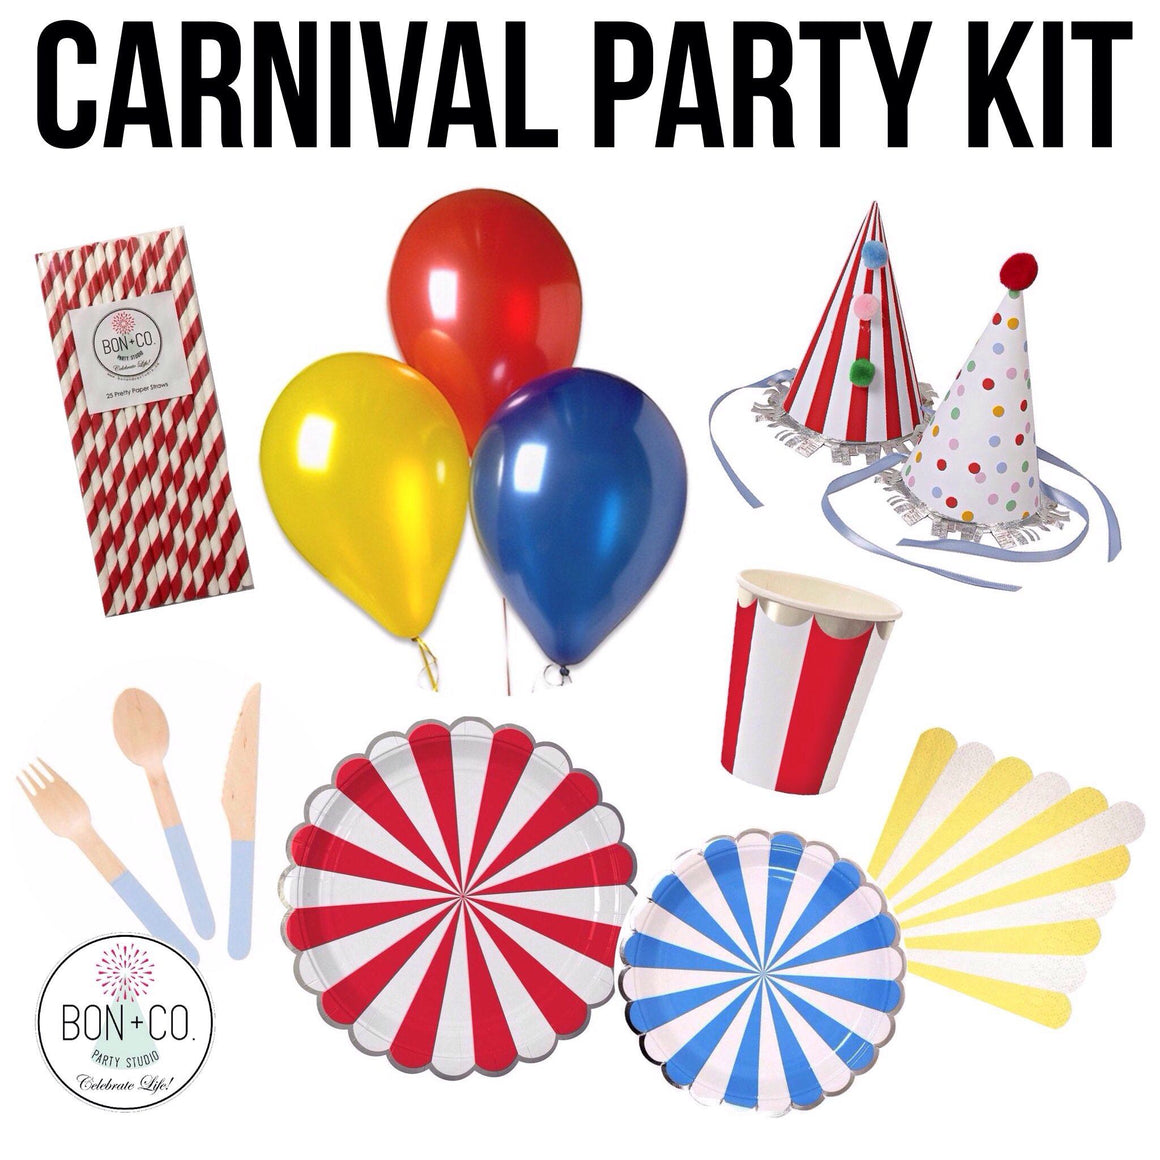 PARTY KIT - CARNIVAL CIRCUS